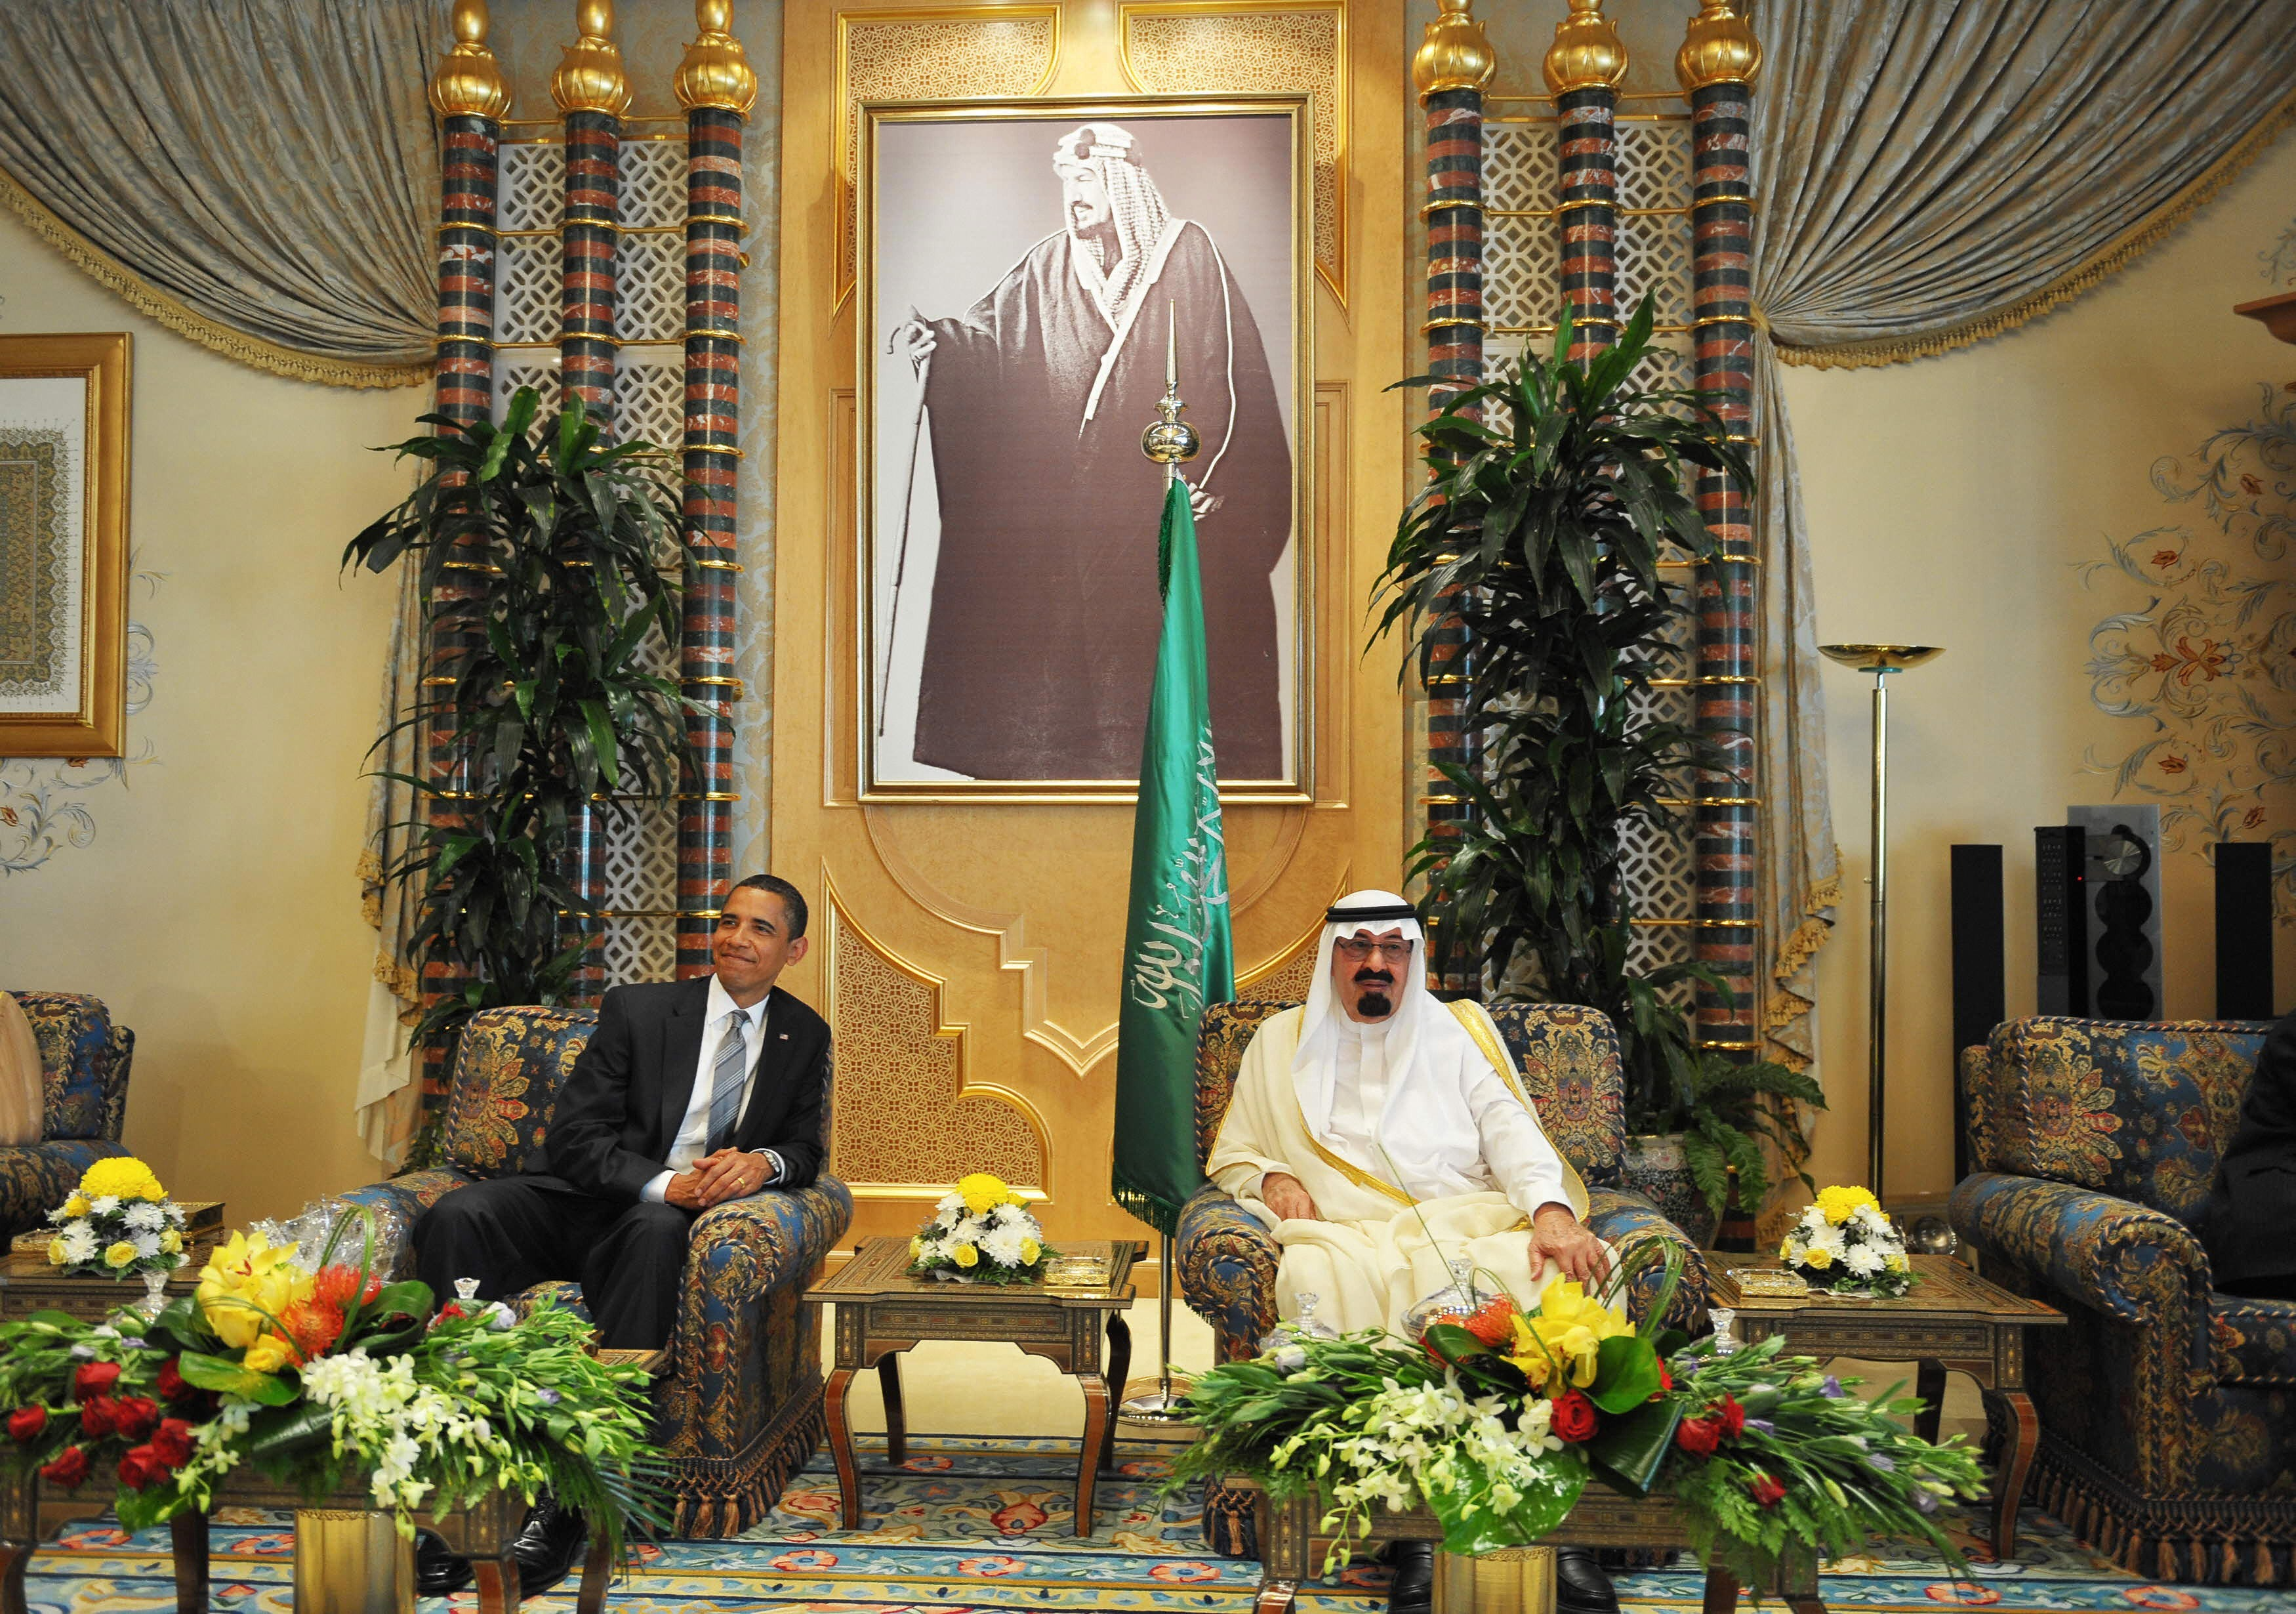 King Abdullah hosts Barack Obama at a reception during the President's 2009 trip to Saudi Arabia